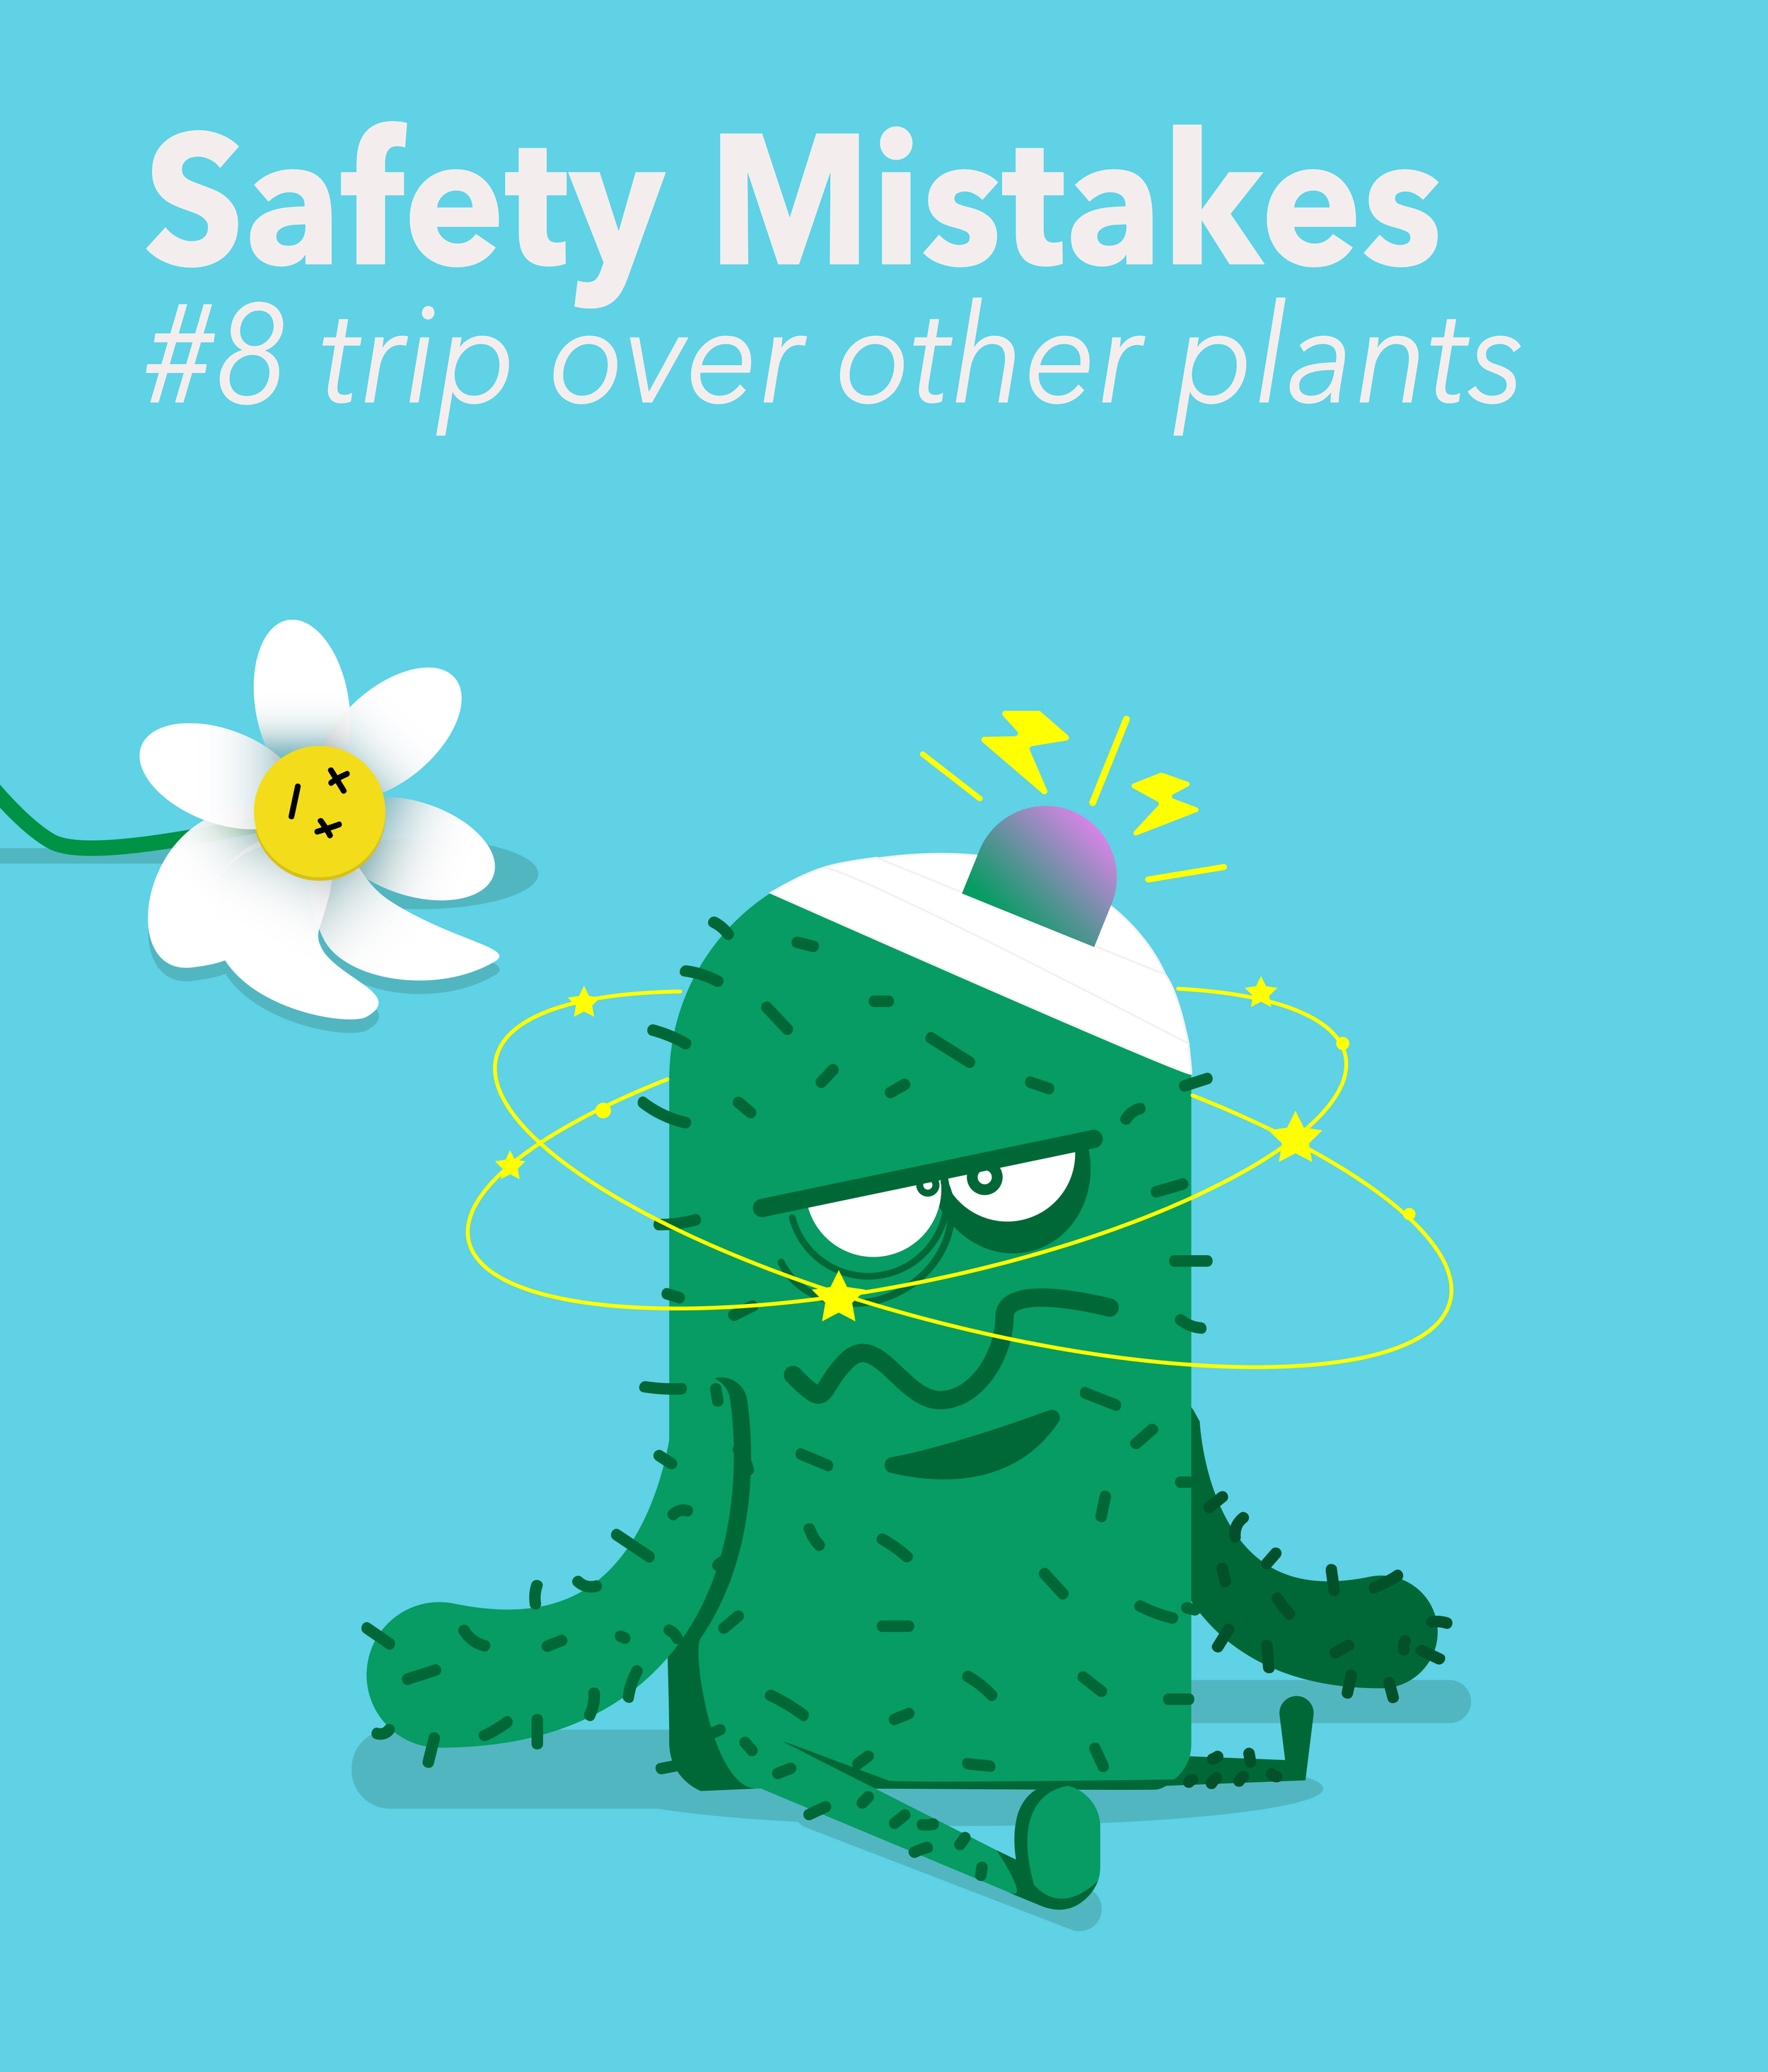 cactus_hurt2_SafetyMistakes.png